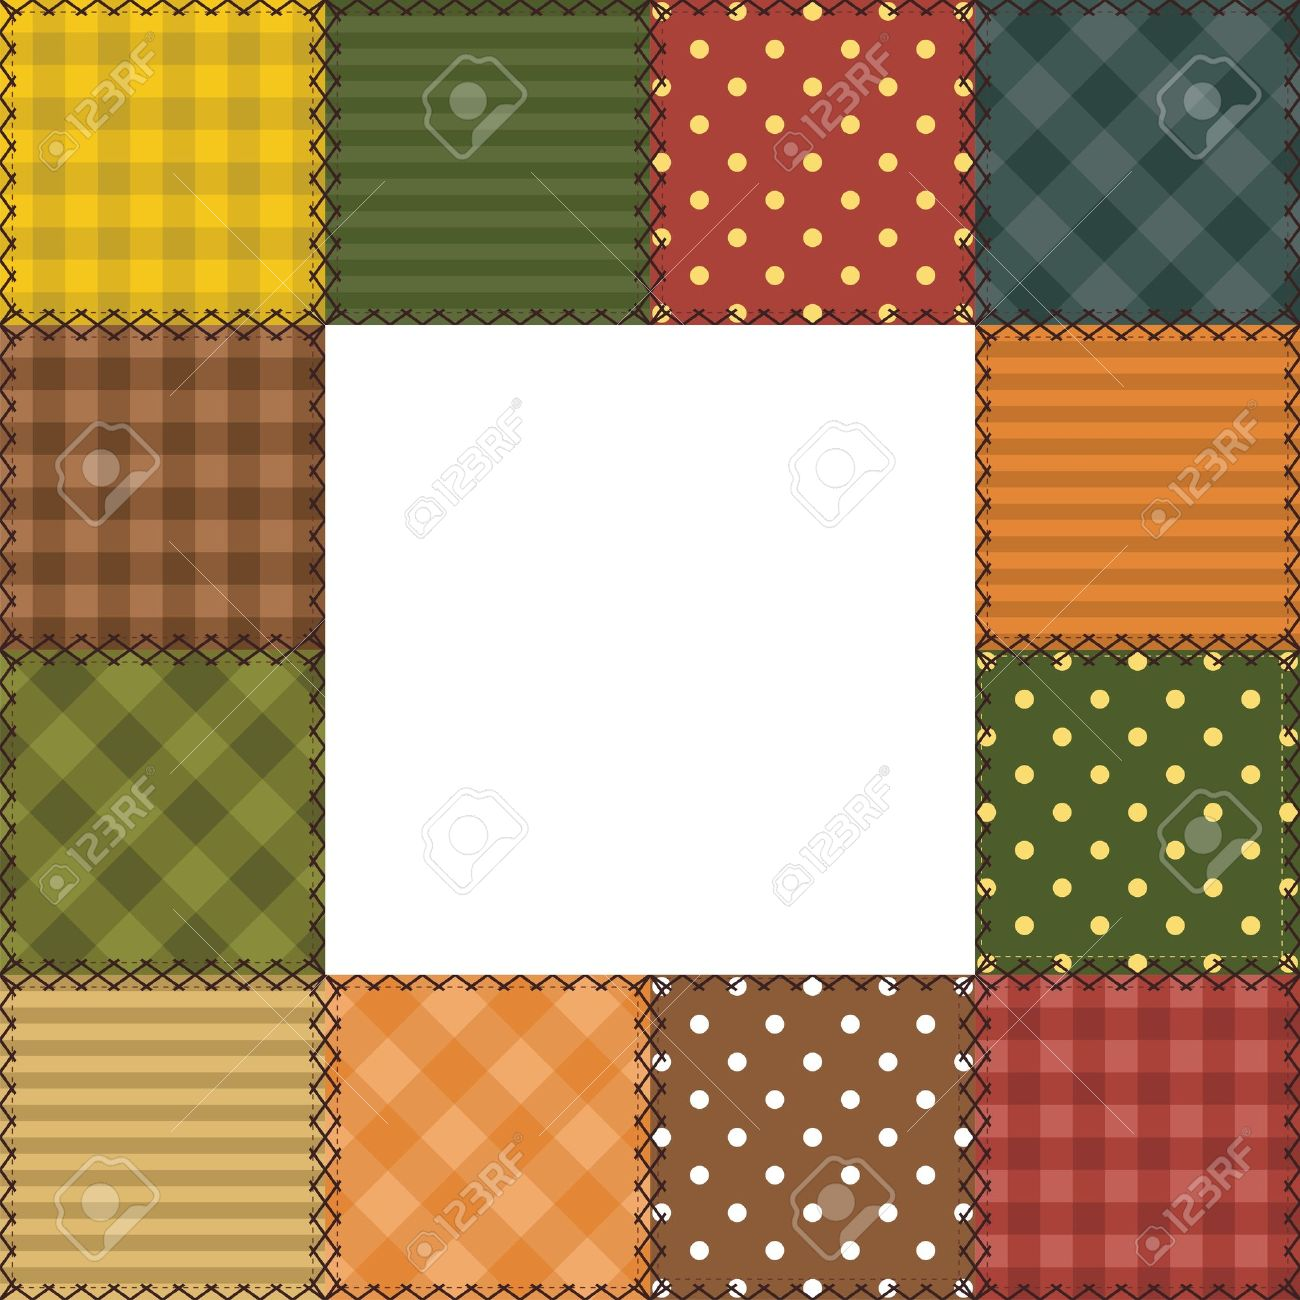 Free clipart frame quilt image freeuse stock Quilting clipart quilt frame - 74 transparent clip arts, images and ... image freeuse stock